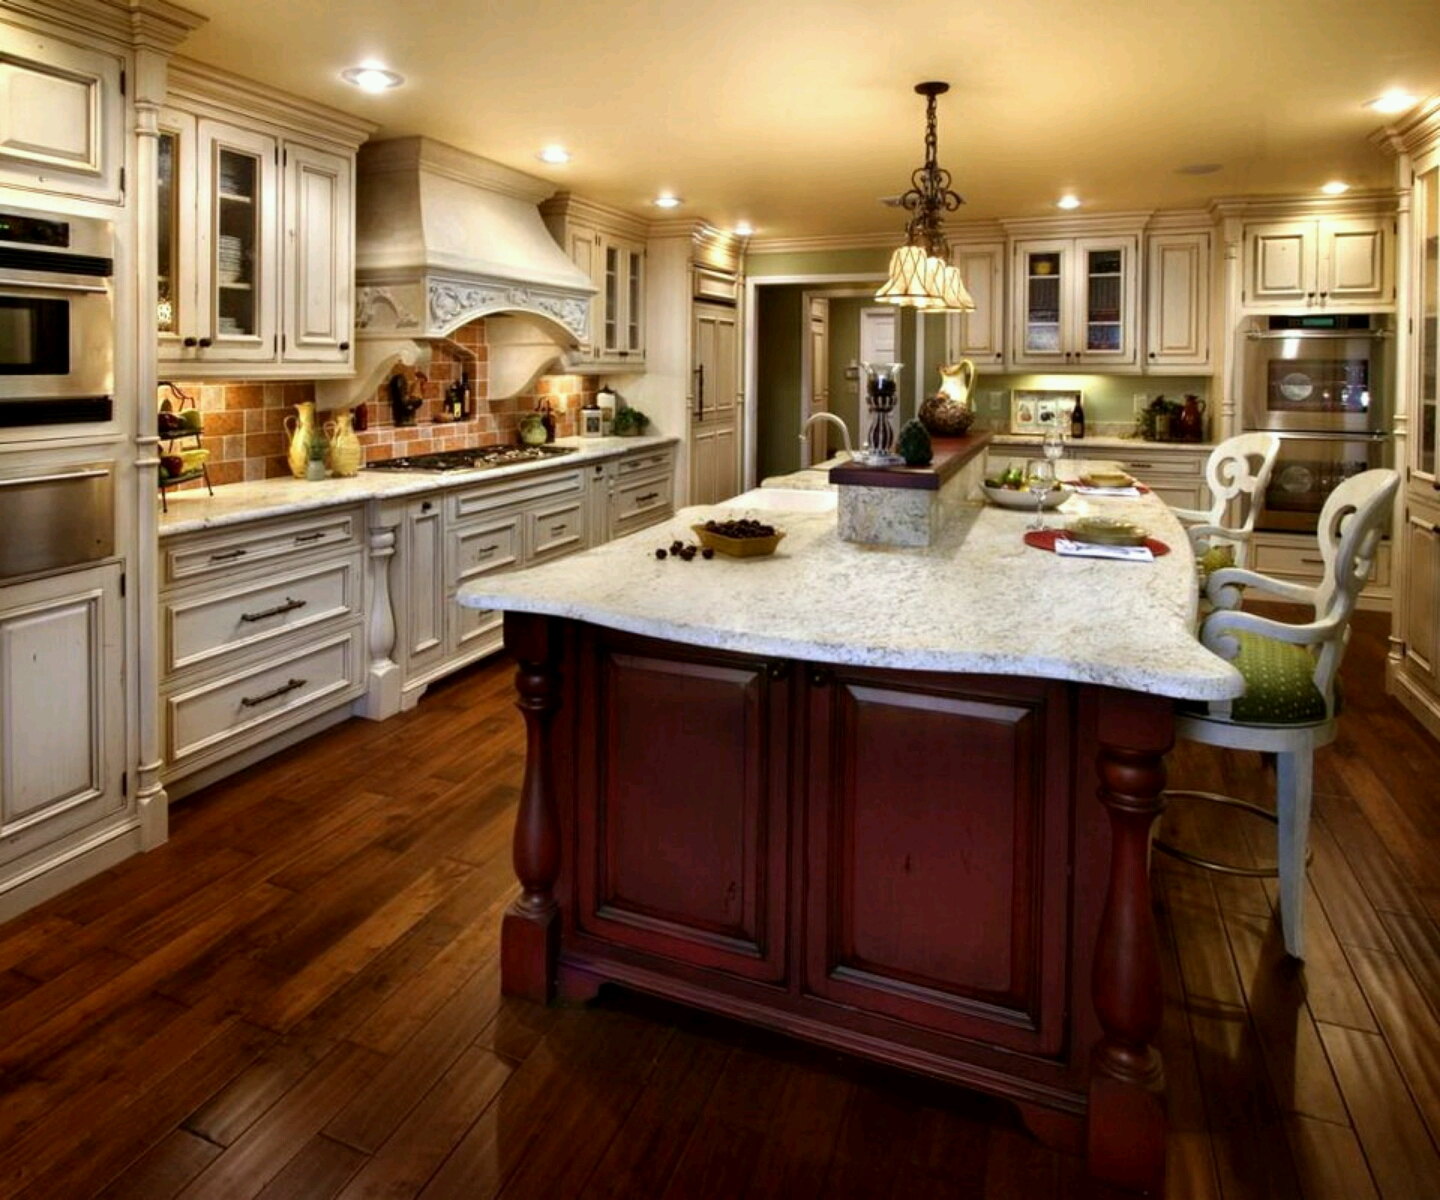 Luxury Kitchen, Modern Kitchen Cabinets Designs